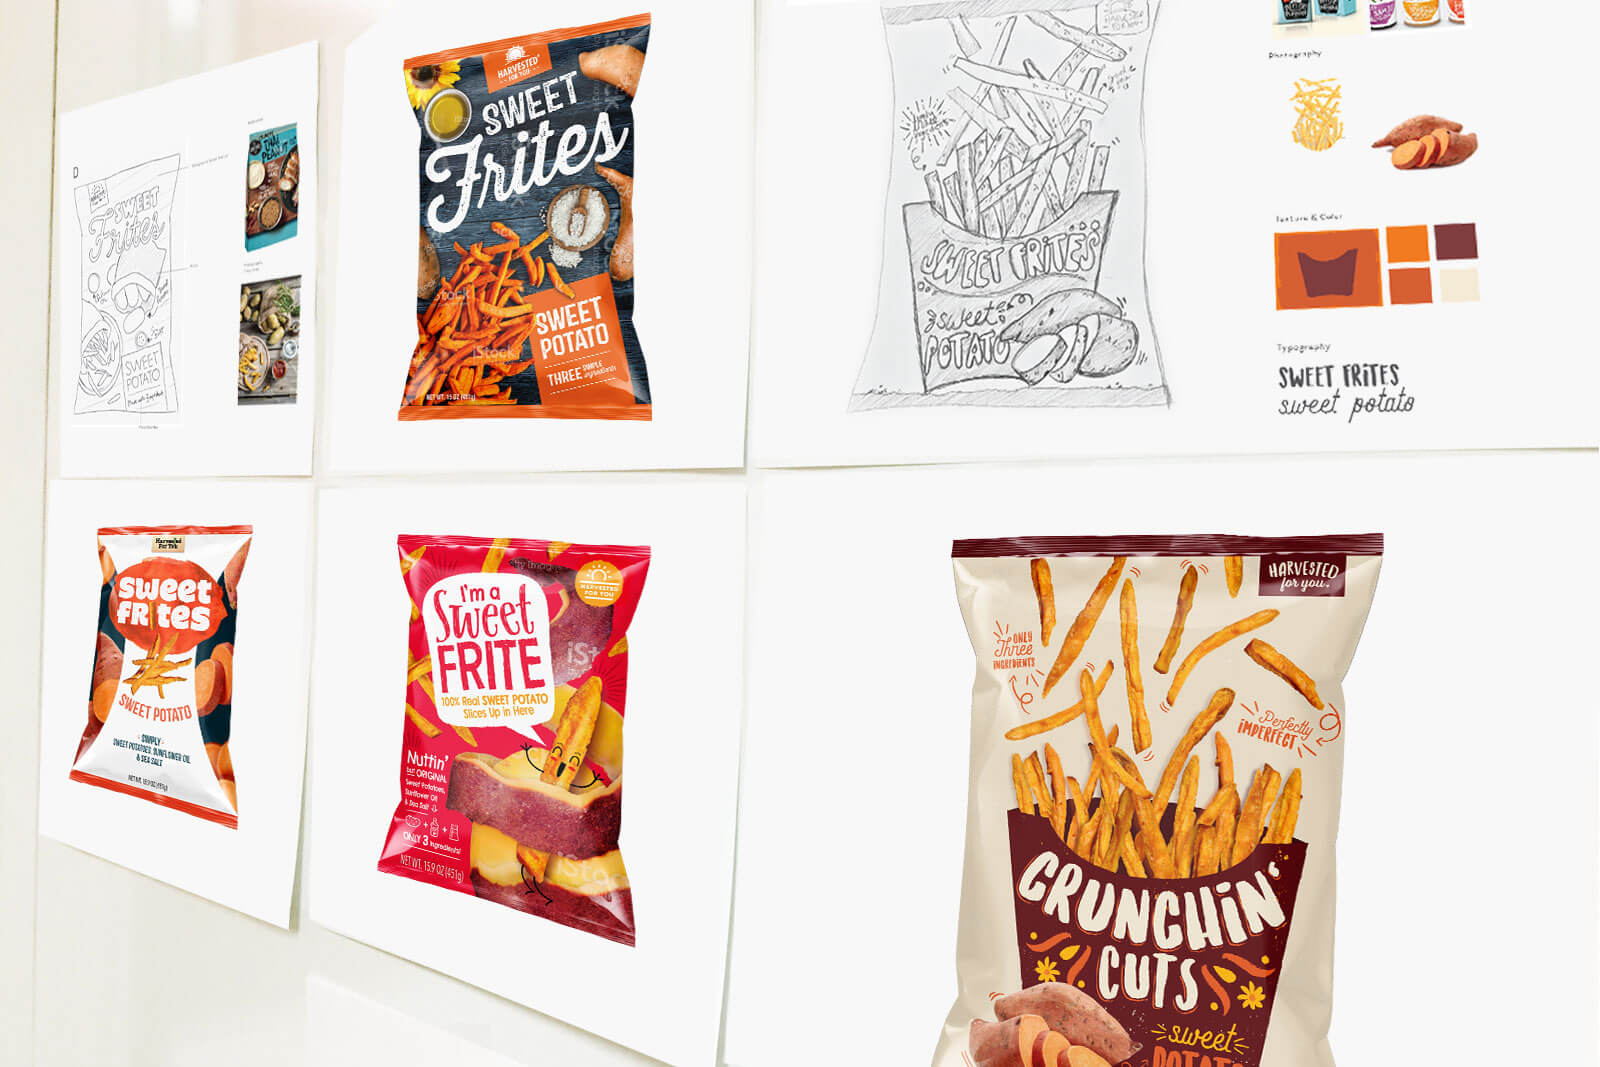 Packaging design concepts are evaluted to ensure they showcase a unique sell point and capture attention on shelf